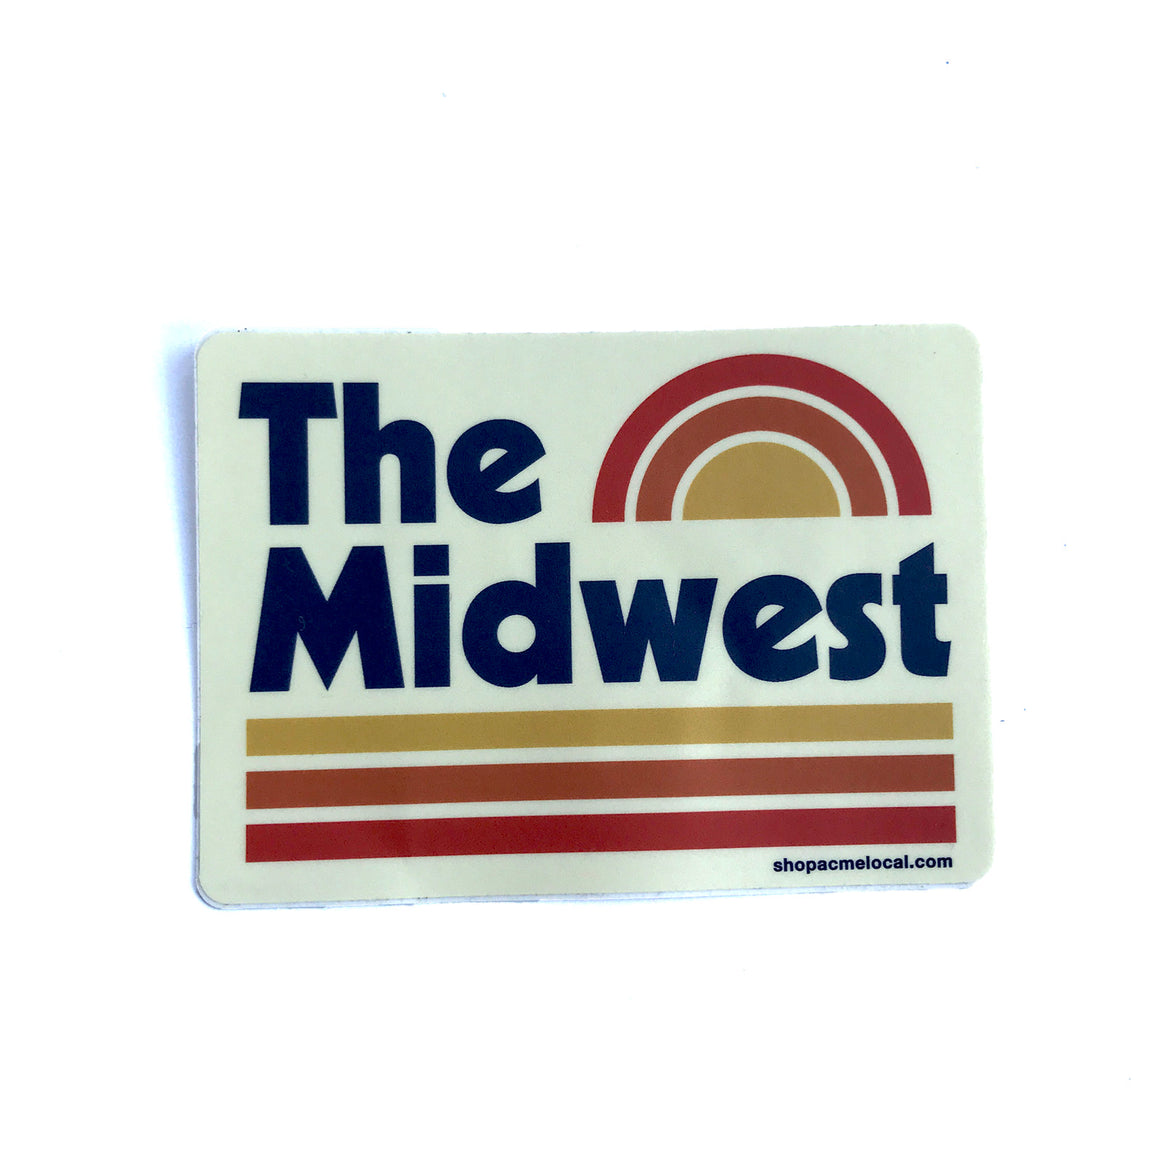 ACME LOCAL | THE MIDWEST SUNSET DECAL